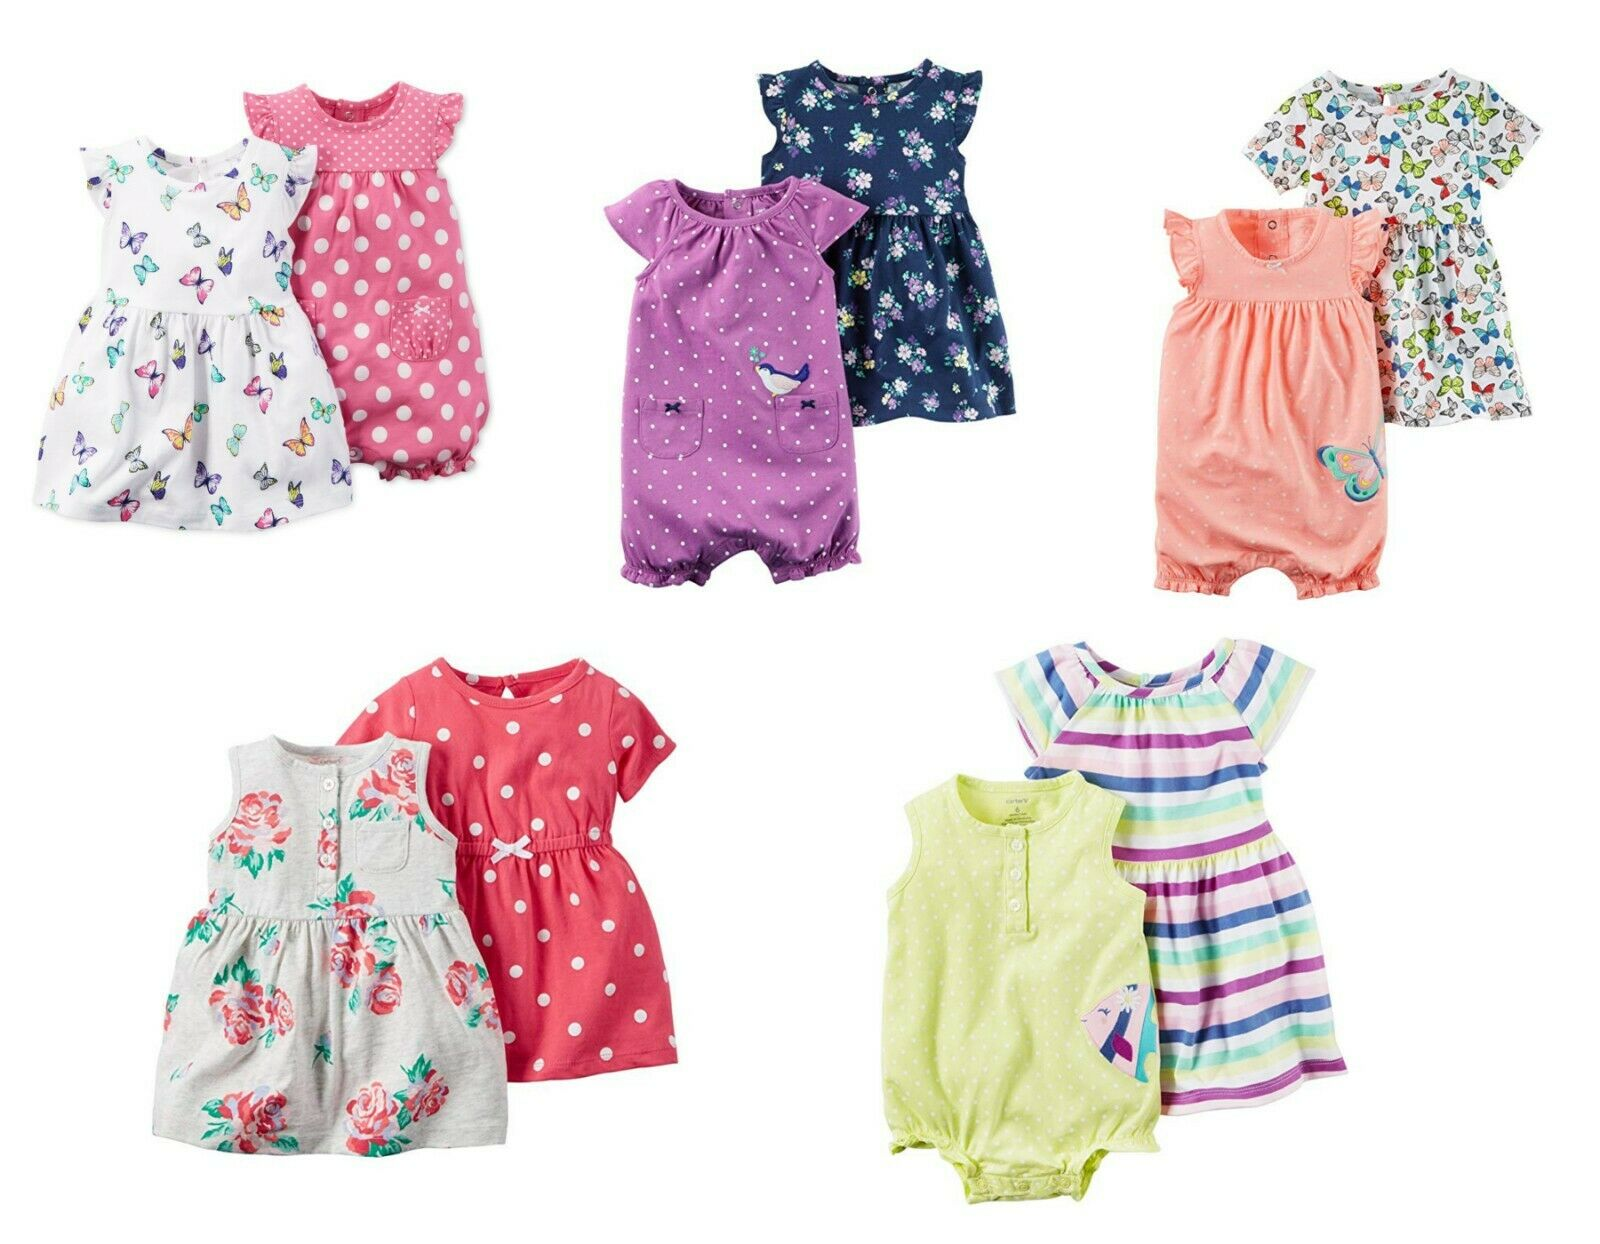 NWT NEW Carter/'s Baby Girls 2 Piece Dress Outfit Set